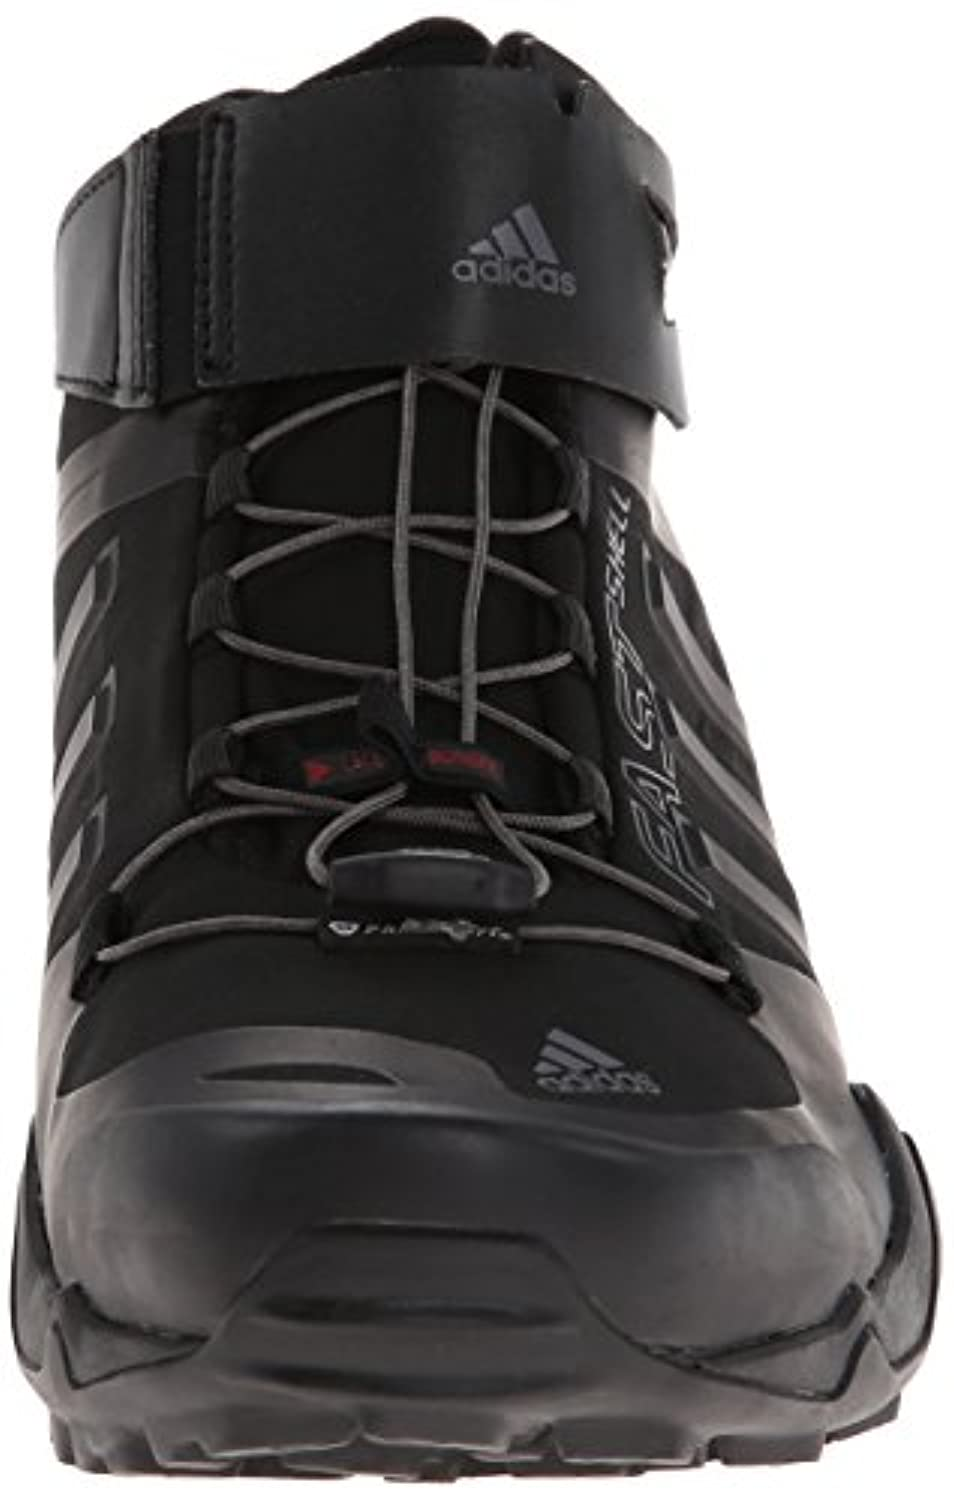 get new finest selection quite nice Adidas Terrex Fastshell Mid Boot - Men's Black / Univ. Red 10.5 | $380 -  Buy today!